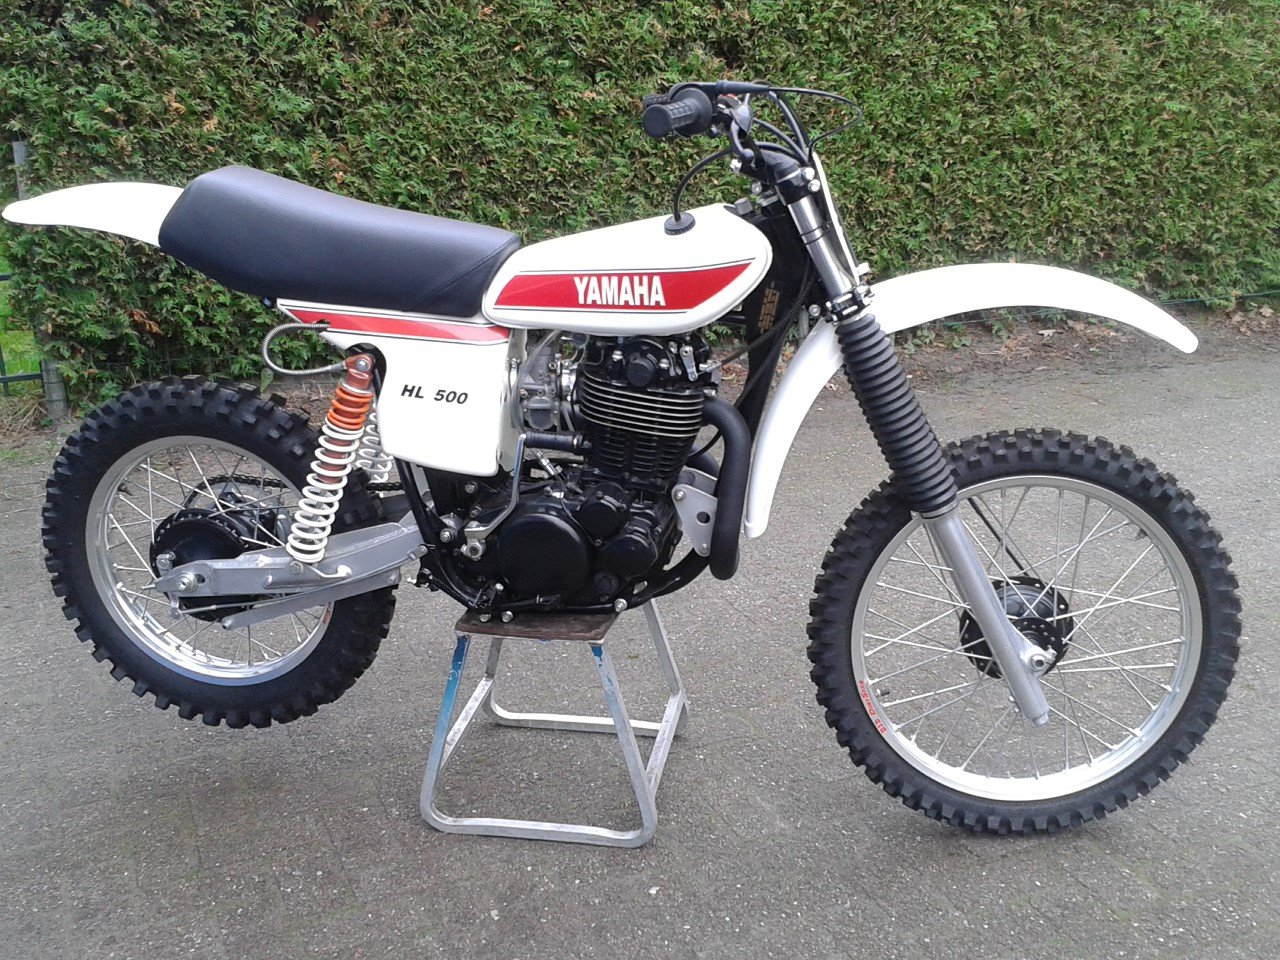 1978 Yamaha HL 500   For Sale (picture 1 of 2)